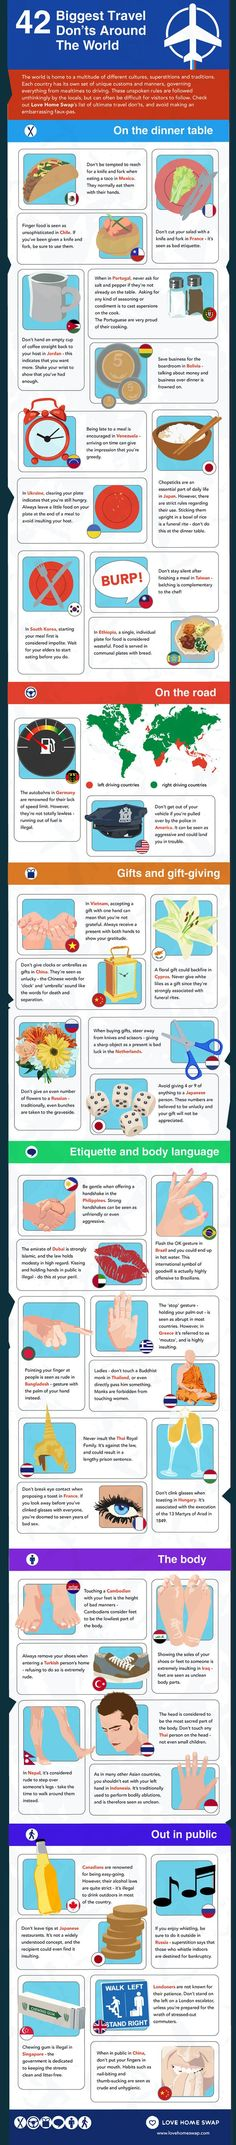 42 Biggest Travel Don'ts Around The World travel vacation tips infographic infographics vacations good to know abroad Travel Info, Travel Bugs, Travel Advice, Time Travel, Places To Travel, Travel Guide, Travel Destinations, Places To Visit, Travel Hacks